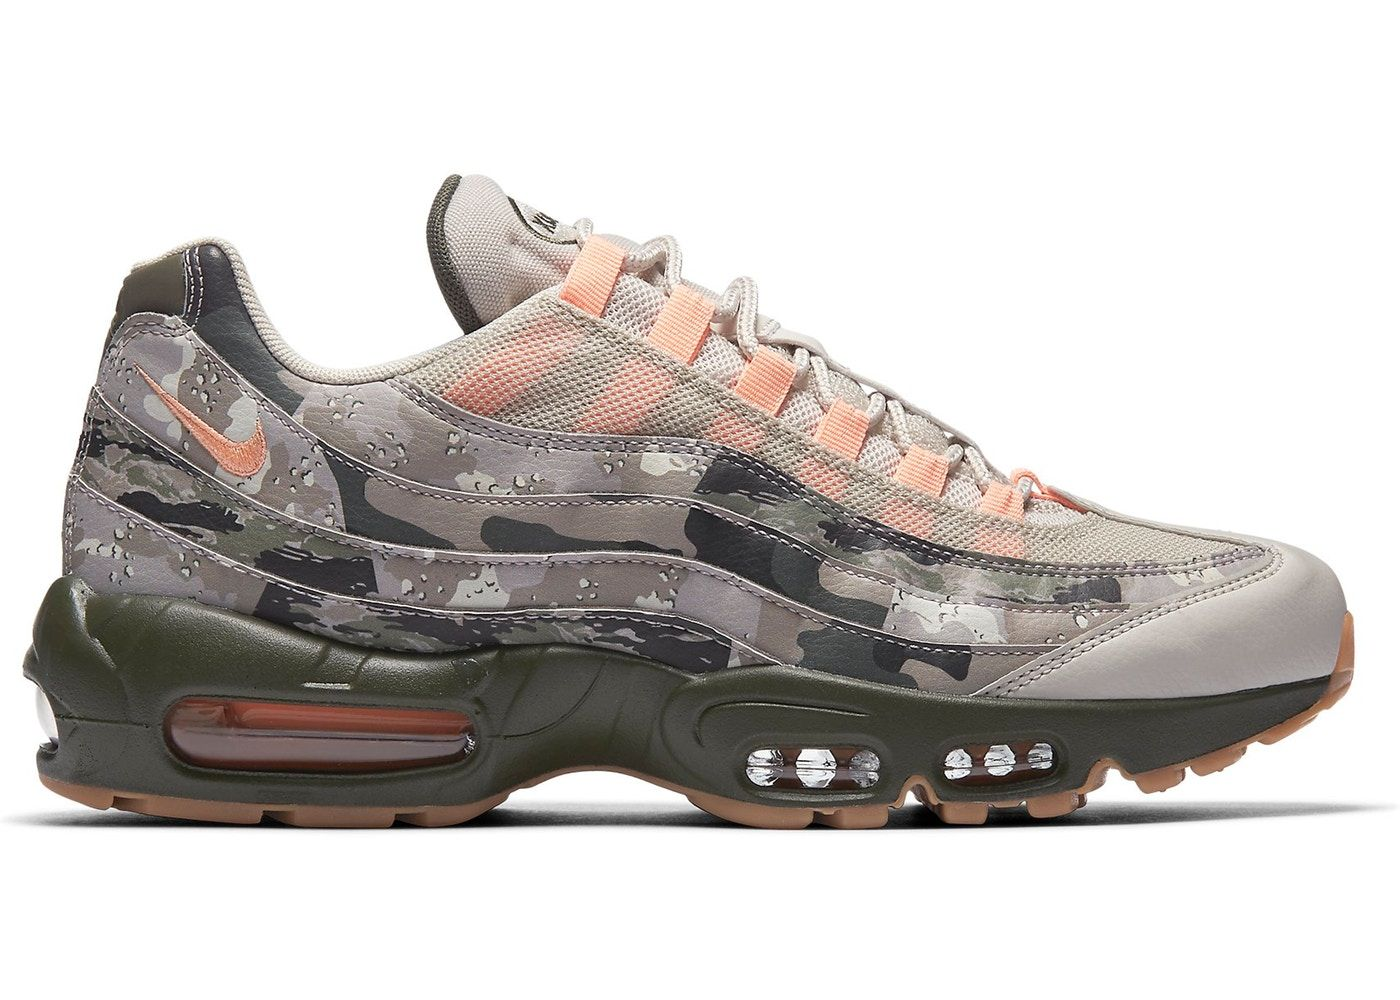 Nike Air Max 95 Camo Sunset in 2020